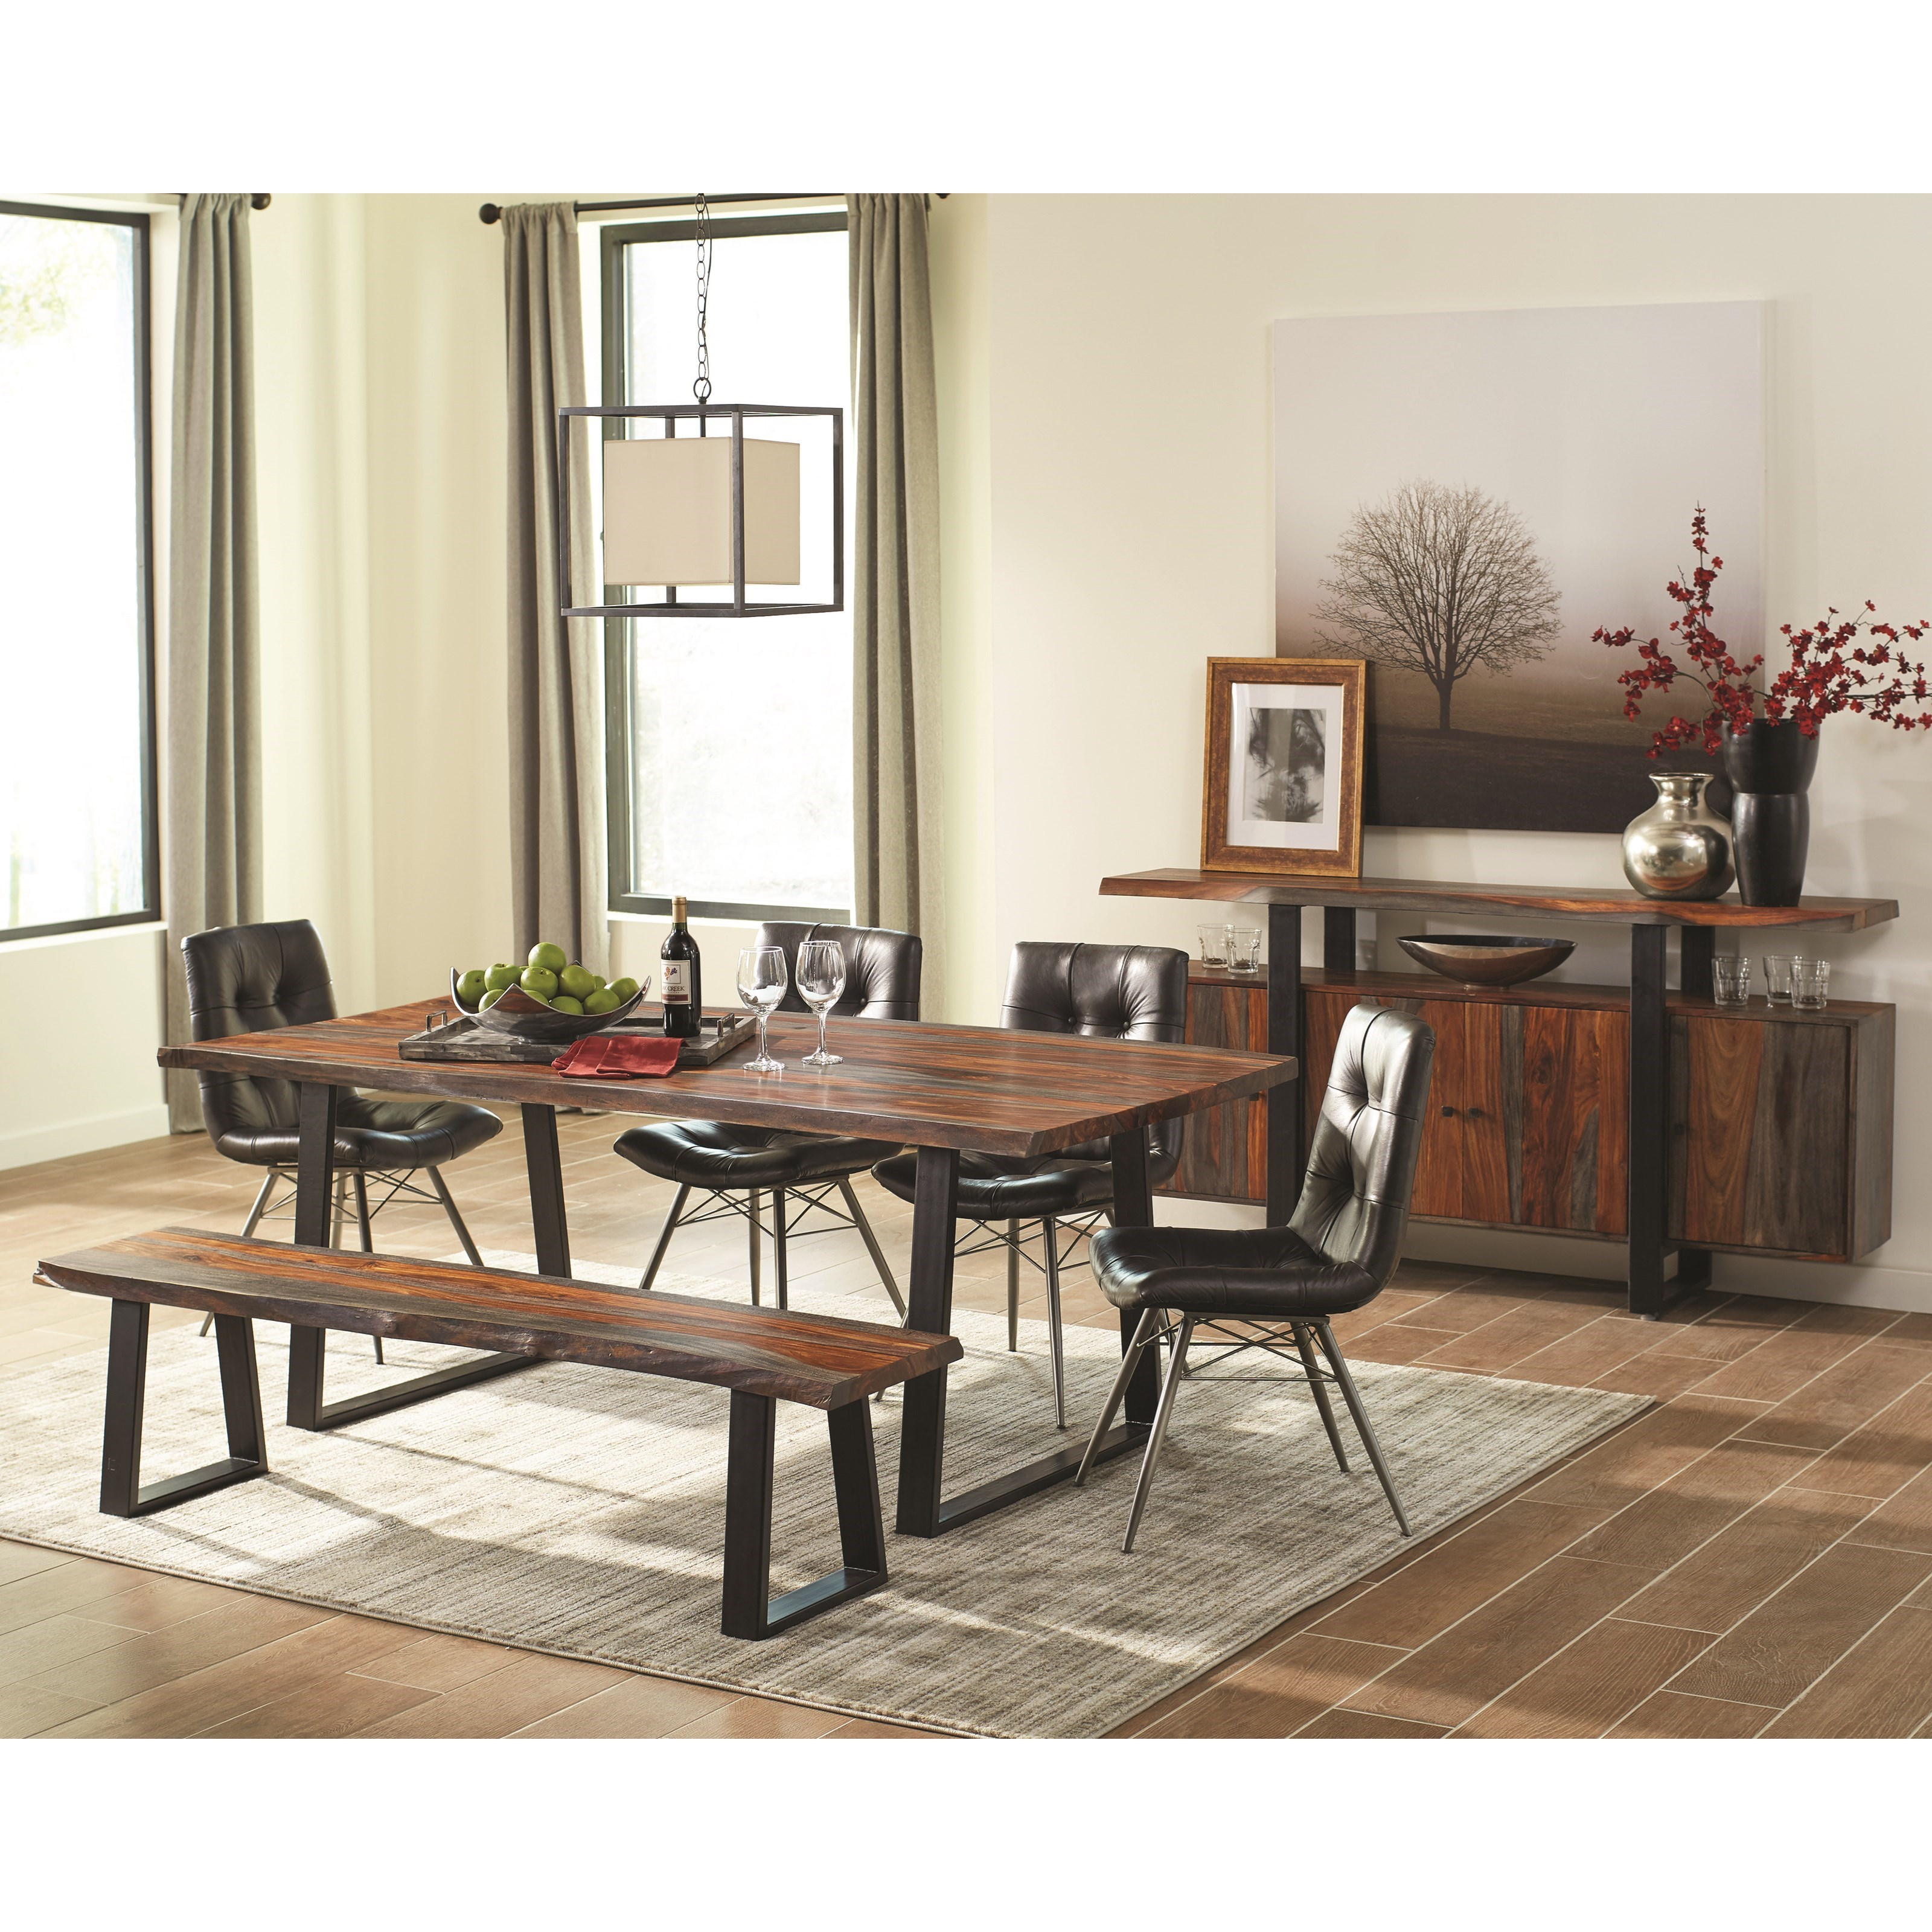 Scott Living Jamestown Rustic Dining Room Set With Bench